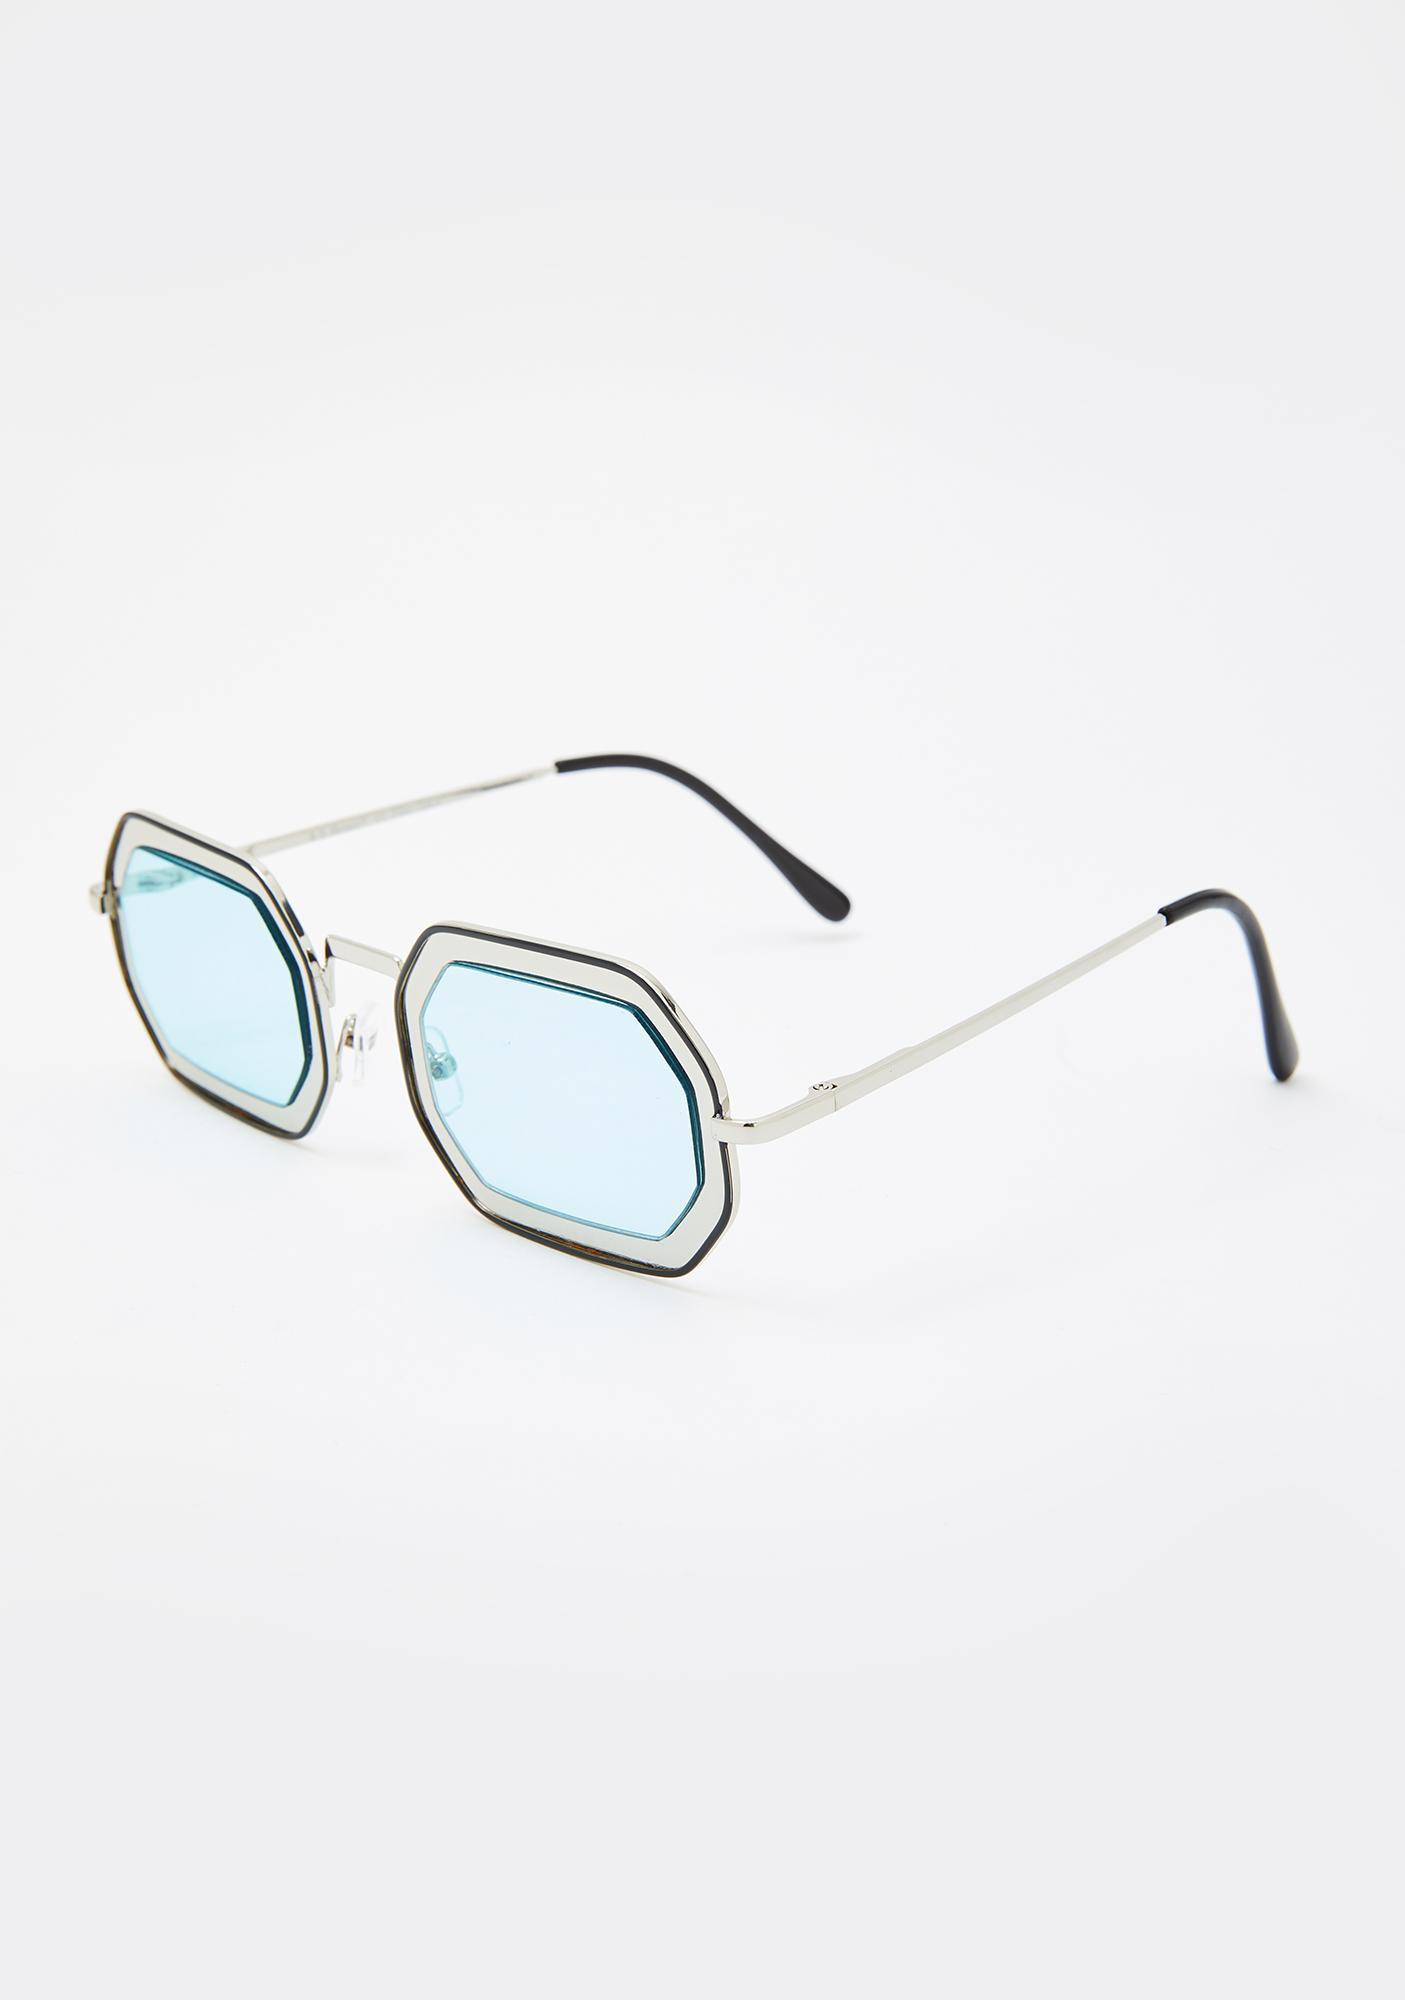 Tidal Zone Oval Sunglasses